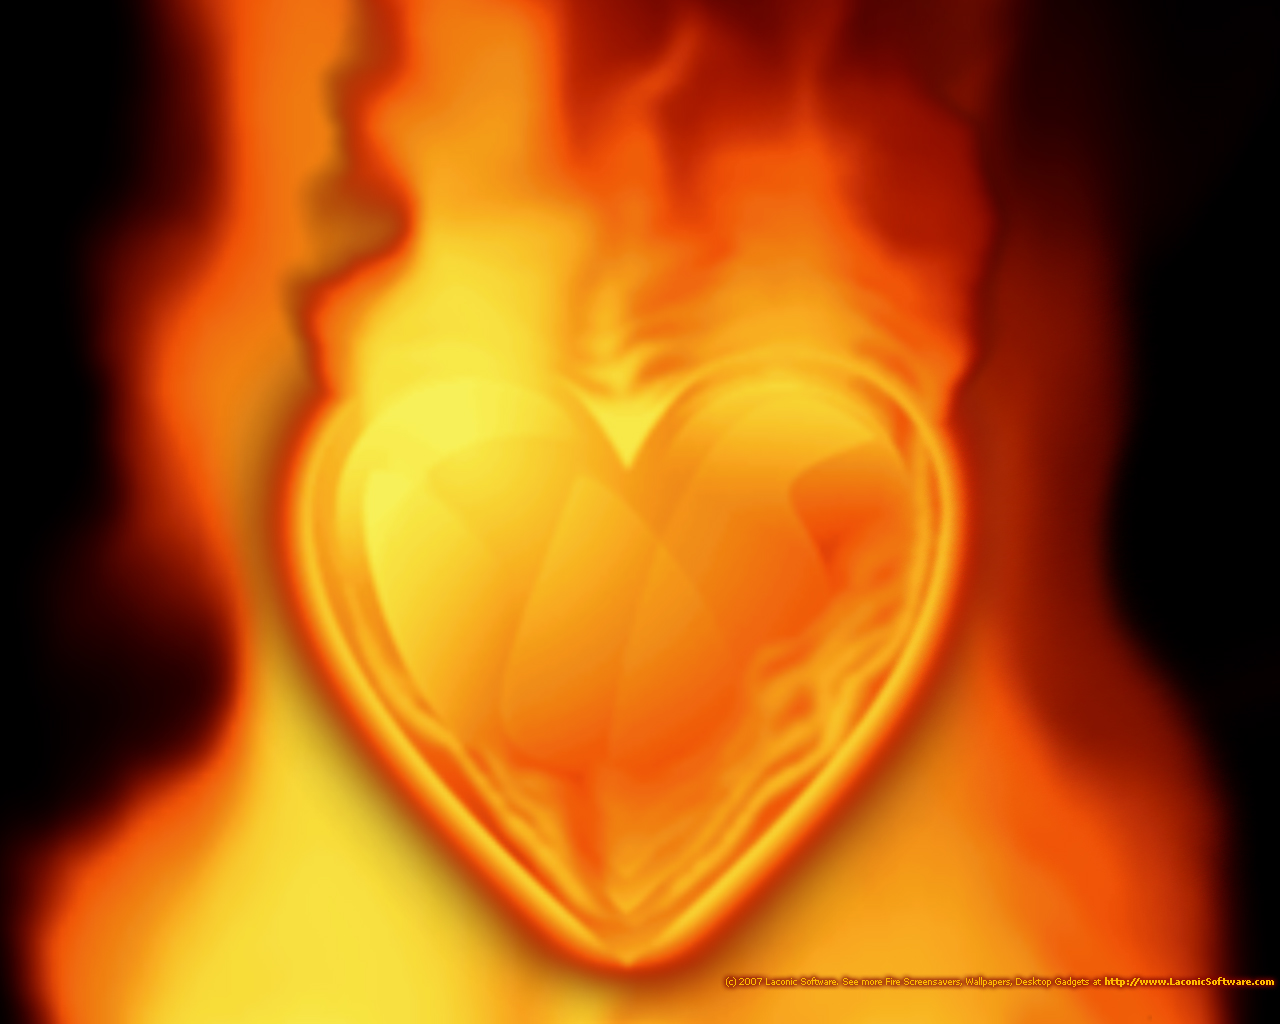 My Life Like Fire Wallpapers Wallpaper of Fires 1280x1024